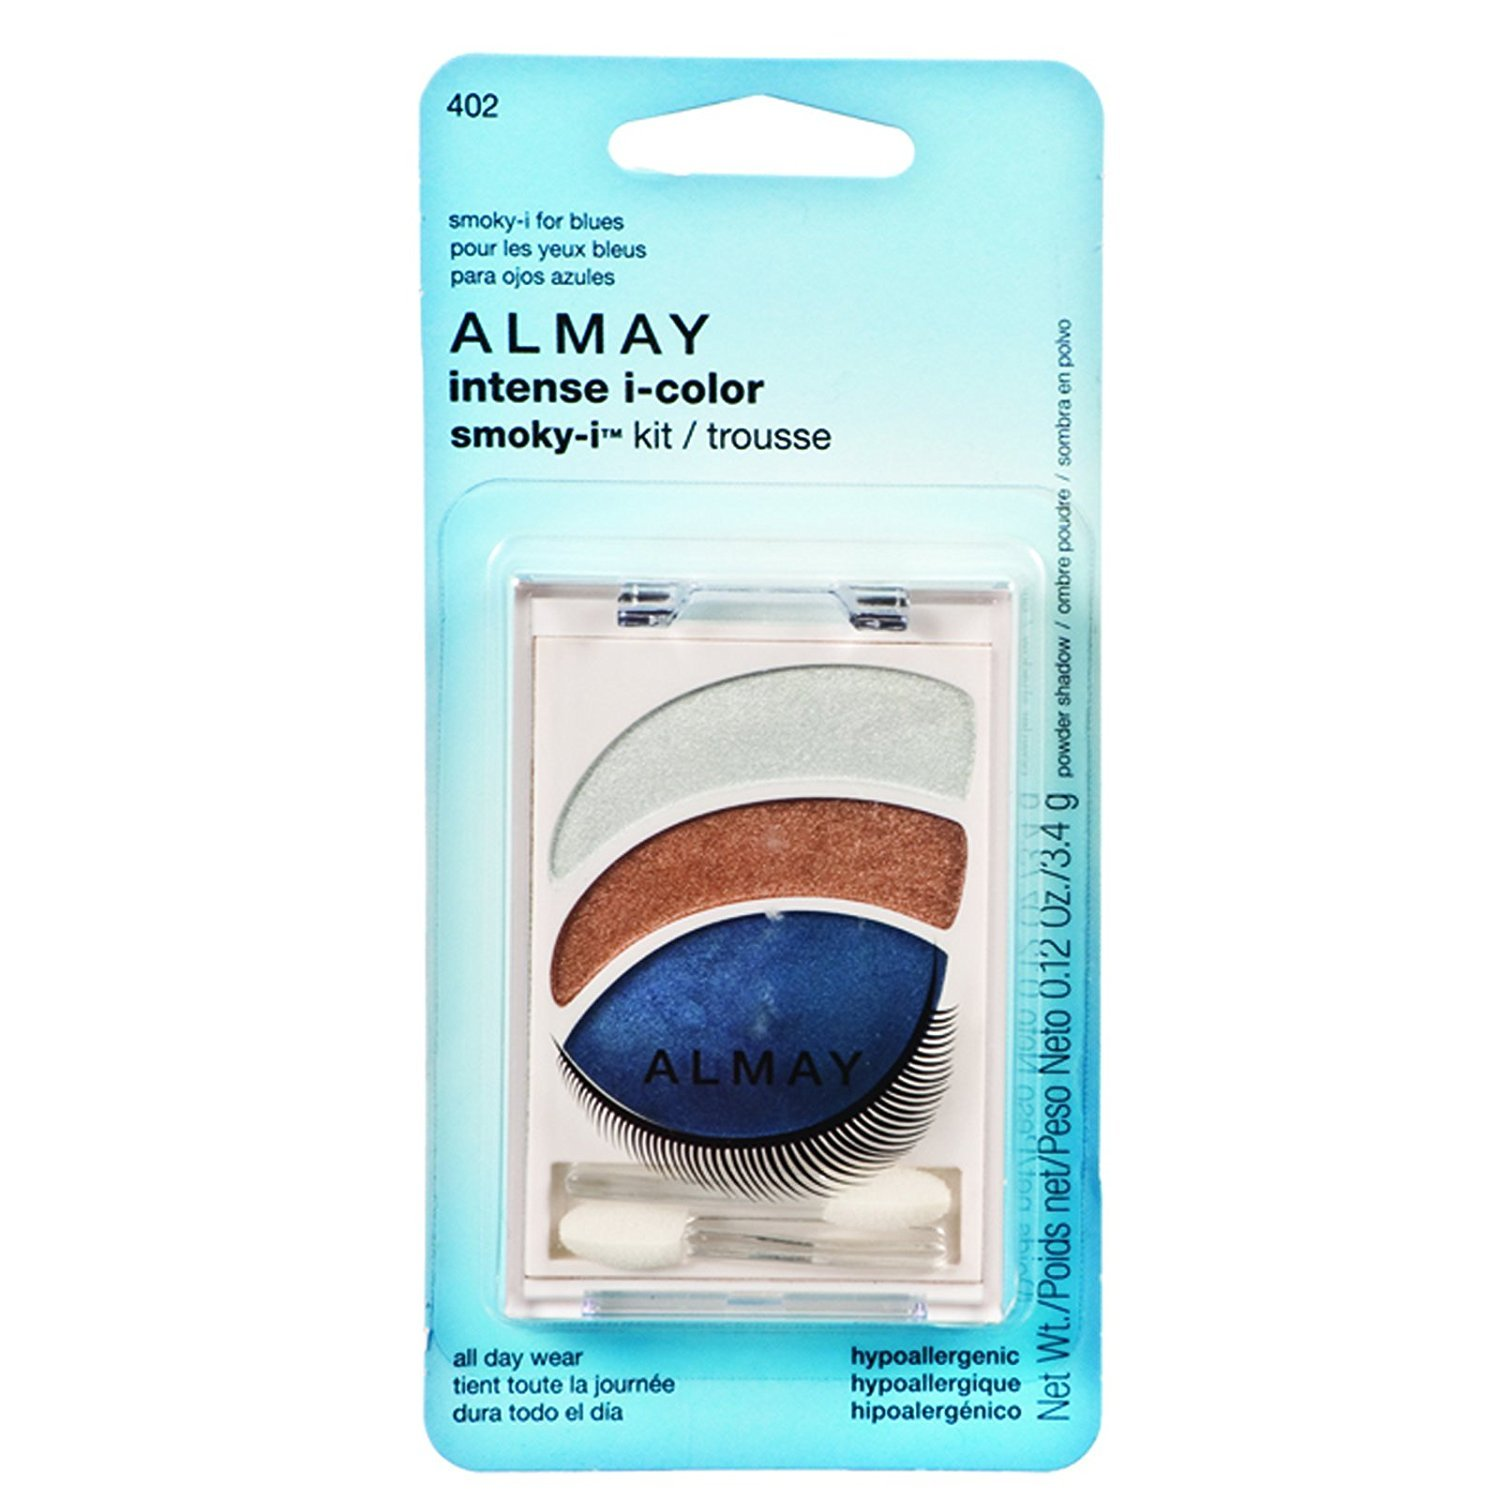 Almay Intense i-Color Smoky, I Kit - For Blue Eyes